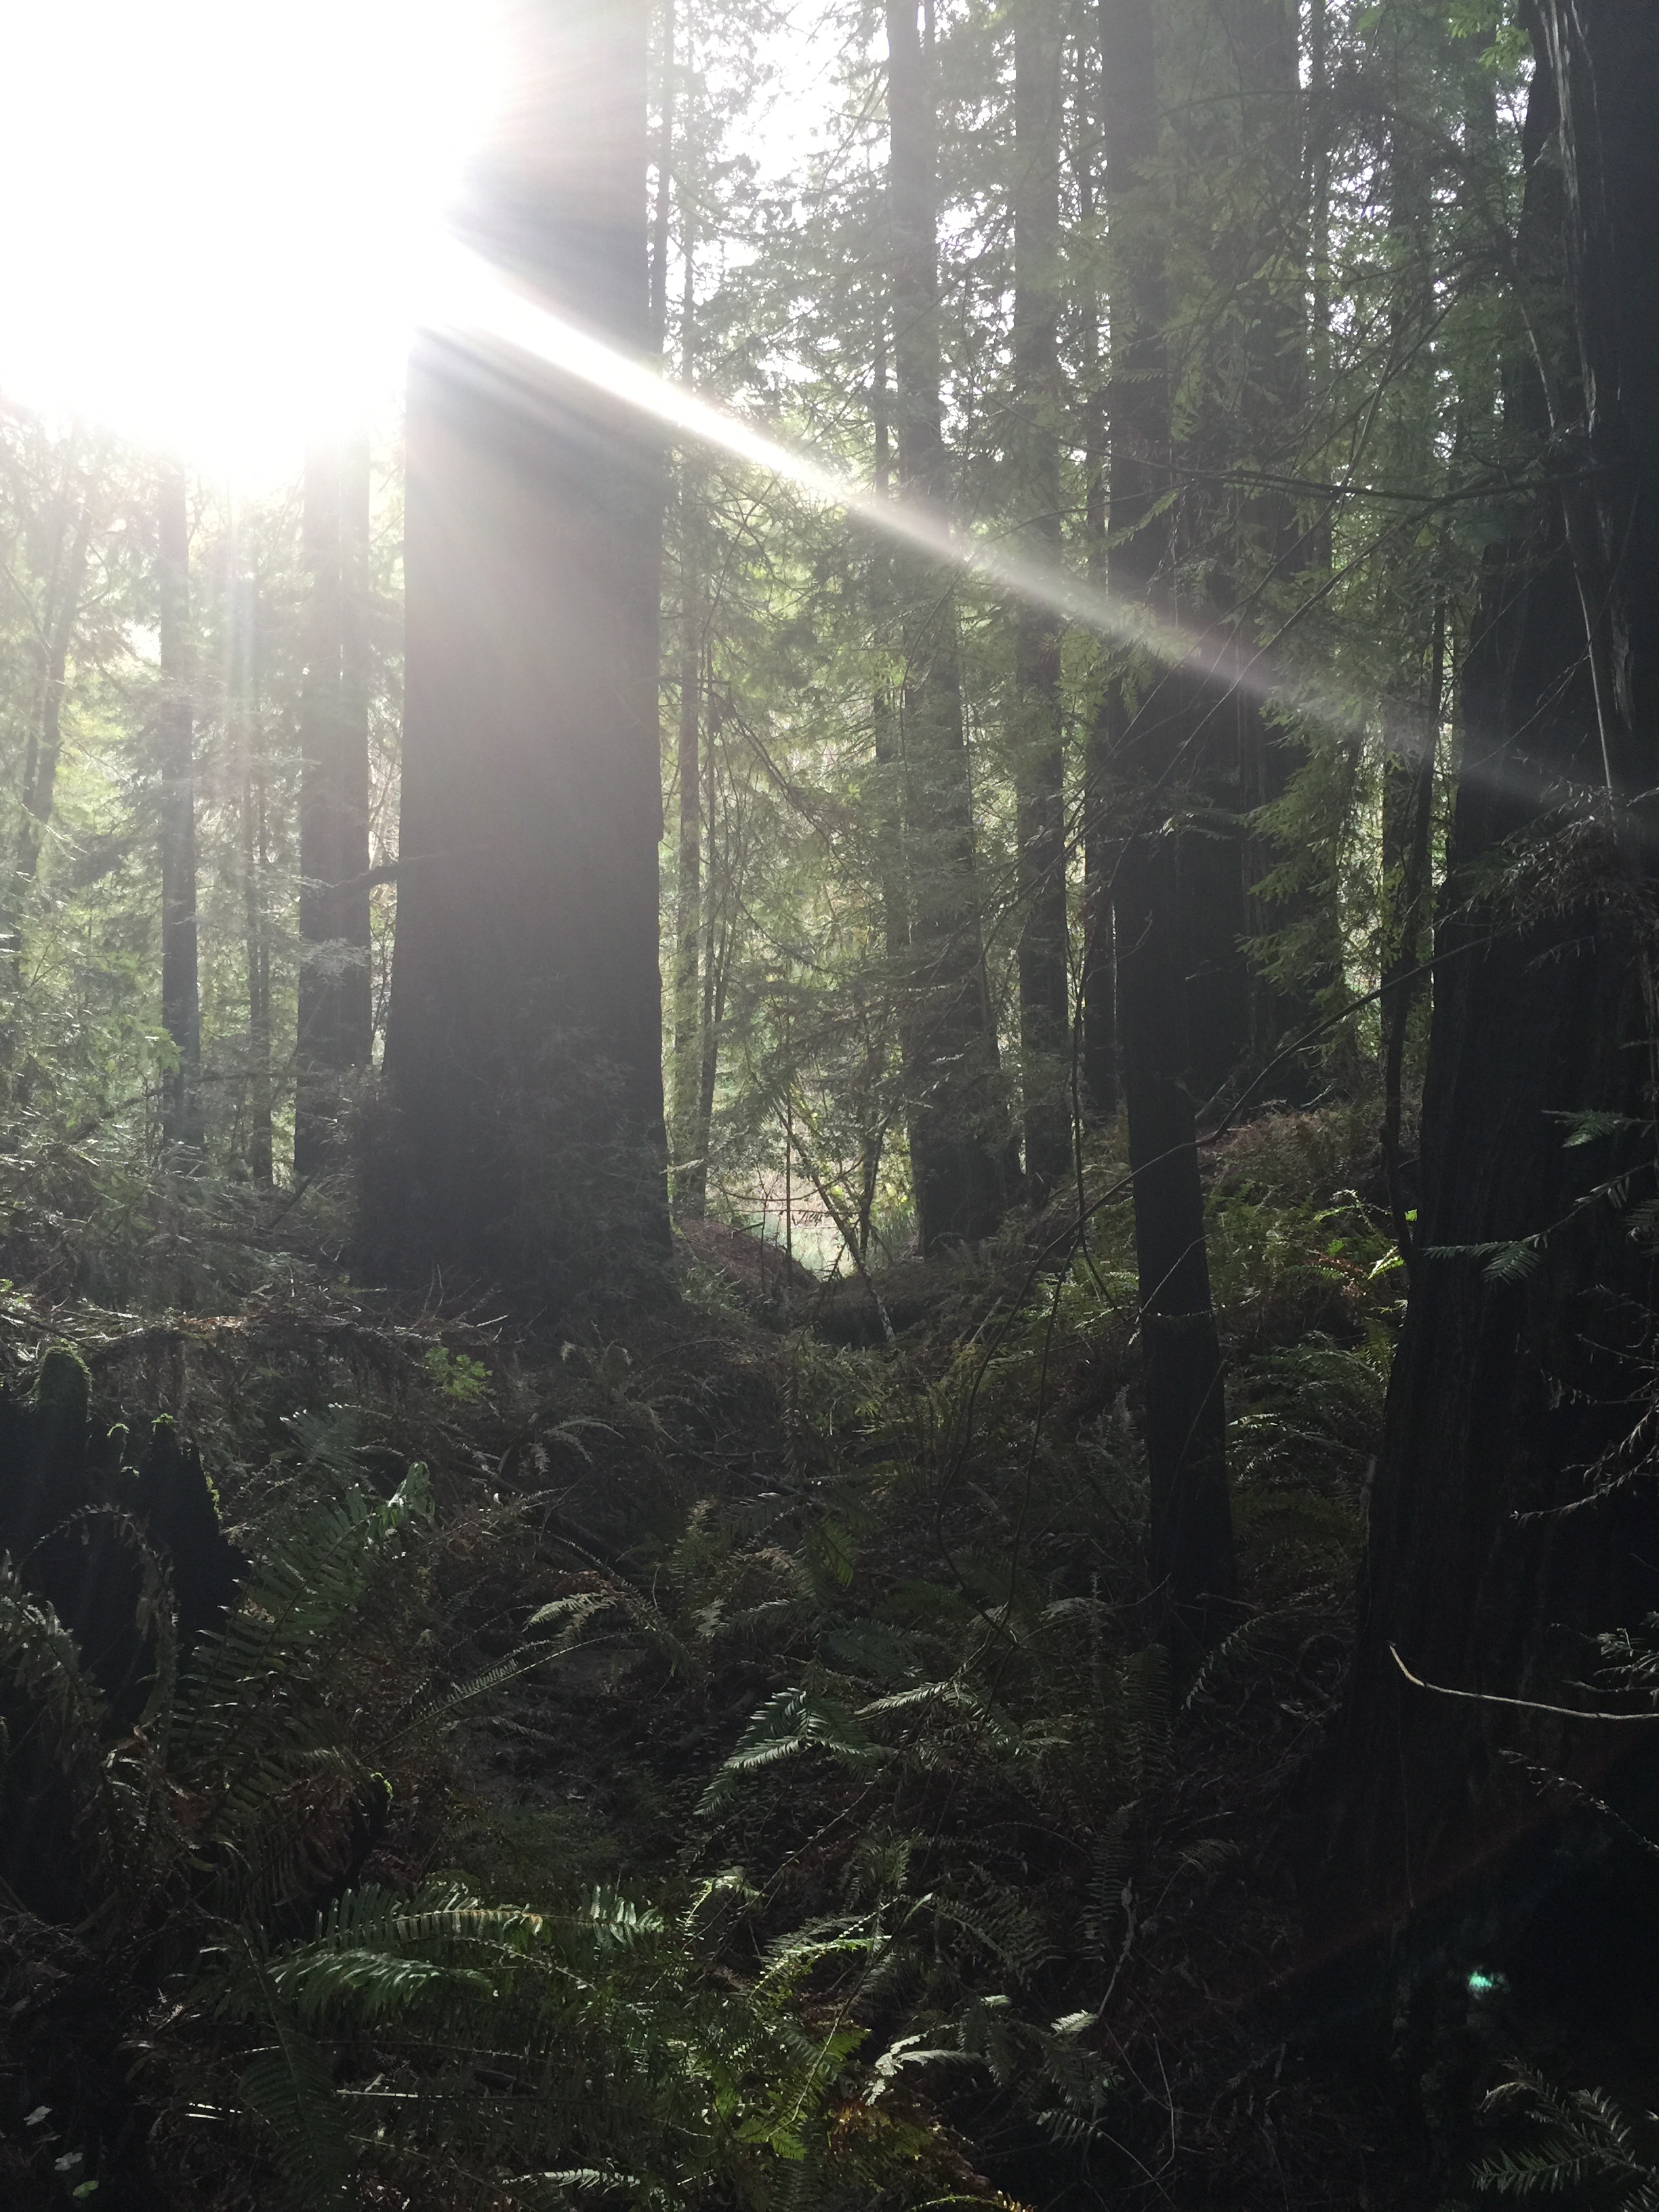 Magical happenings with Sequoia sempervirens in Redwood State Park, Humboldt